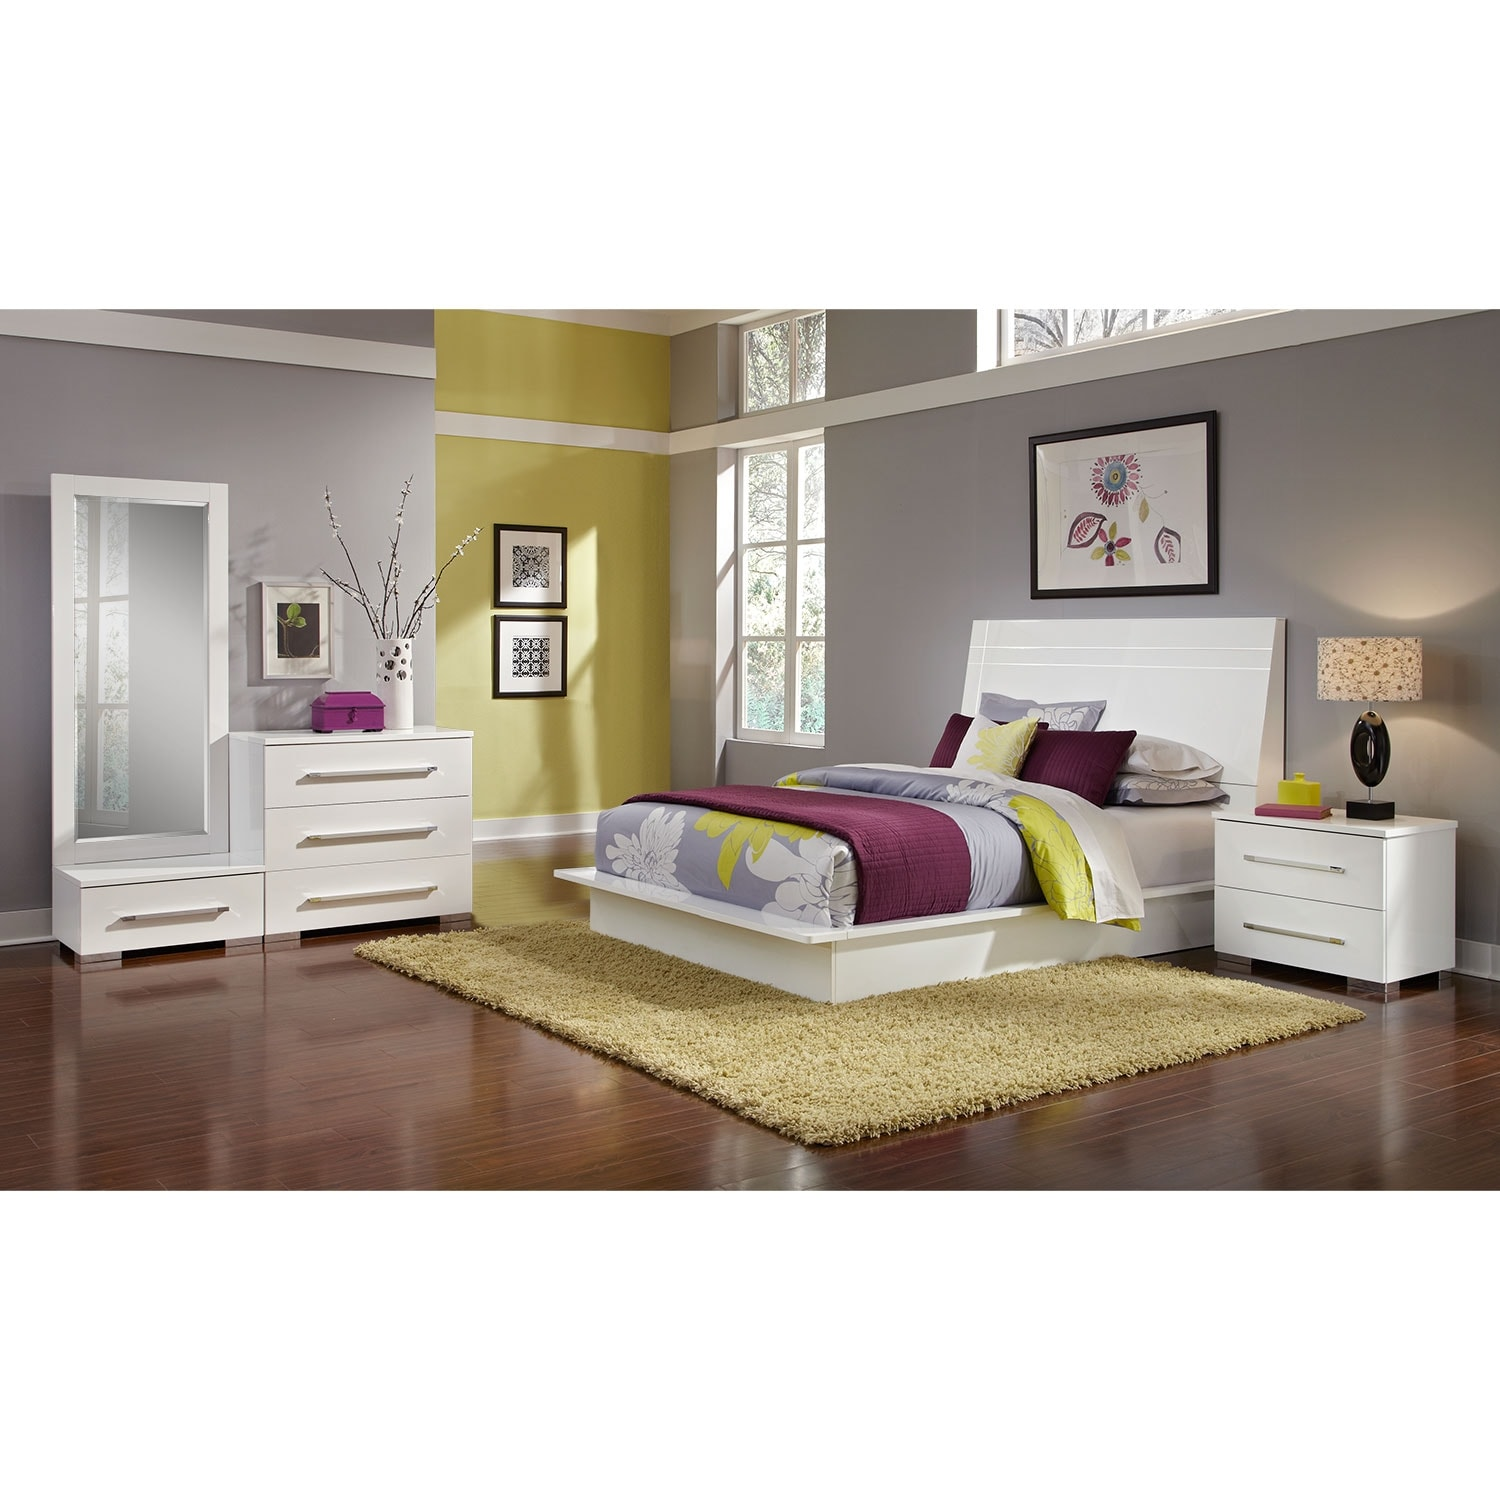 Dimora 5 Piece Queen Panel Bedroom Set With Media Dresser: Dimora 6-Piece Queen Panel Bedroom Set - White